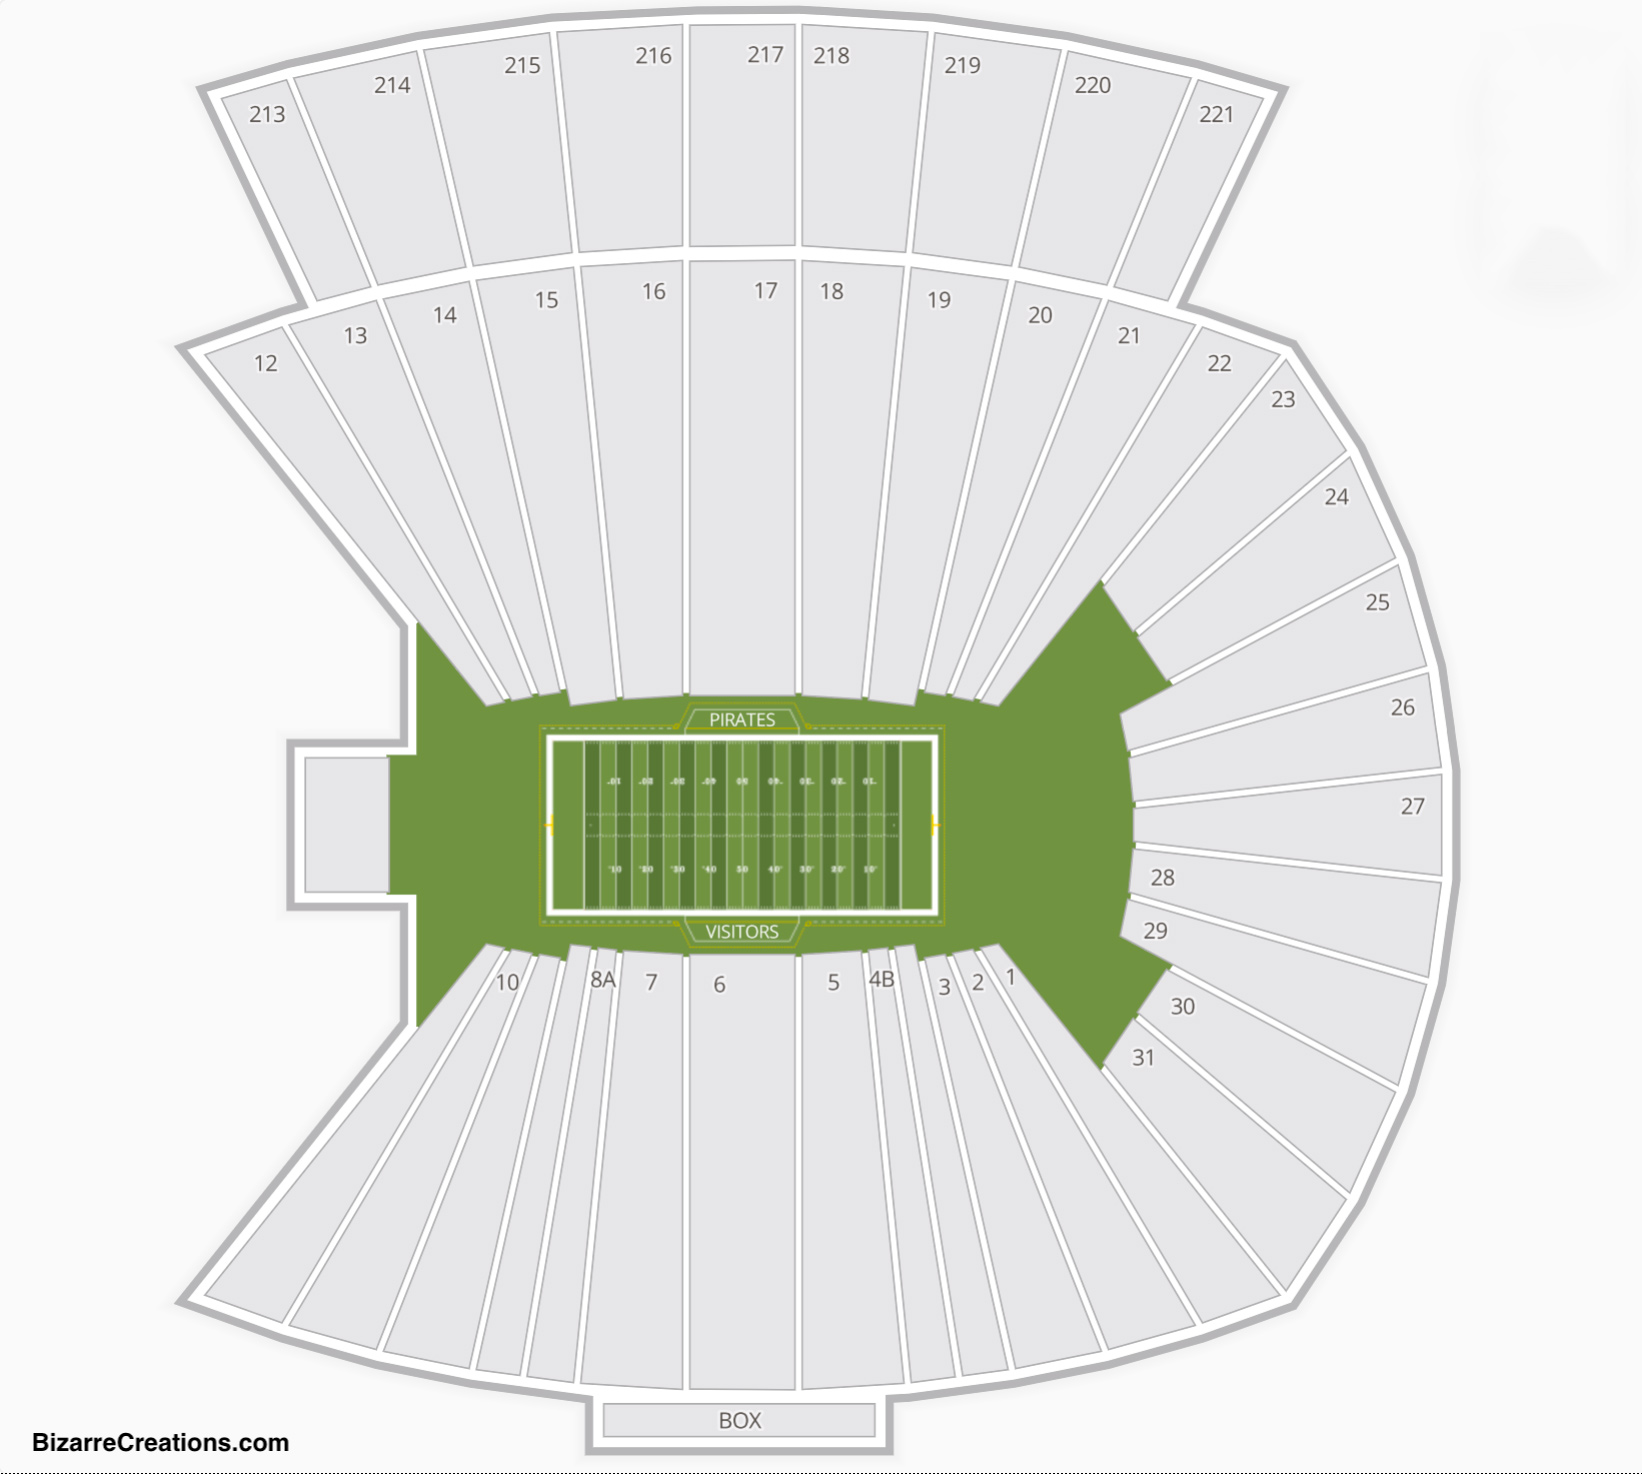 Dowdy Ficklen Stadium Seating Chart Seating Charts Amp Tickets